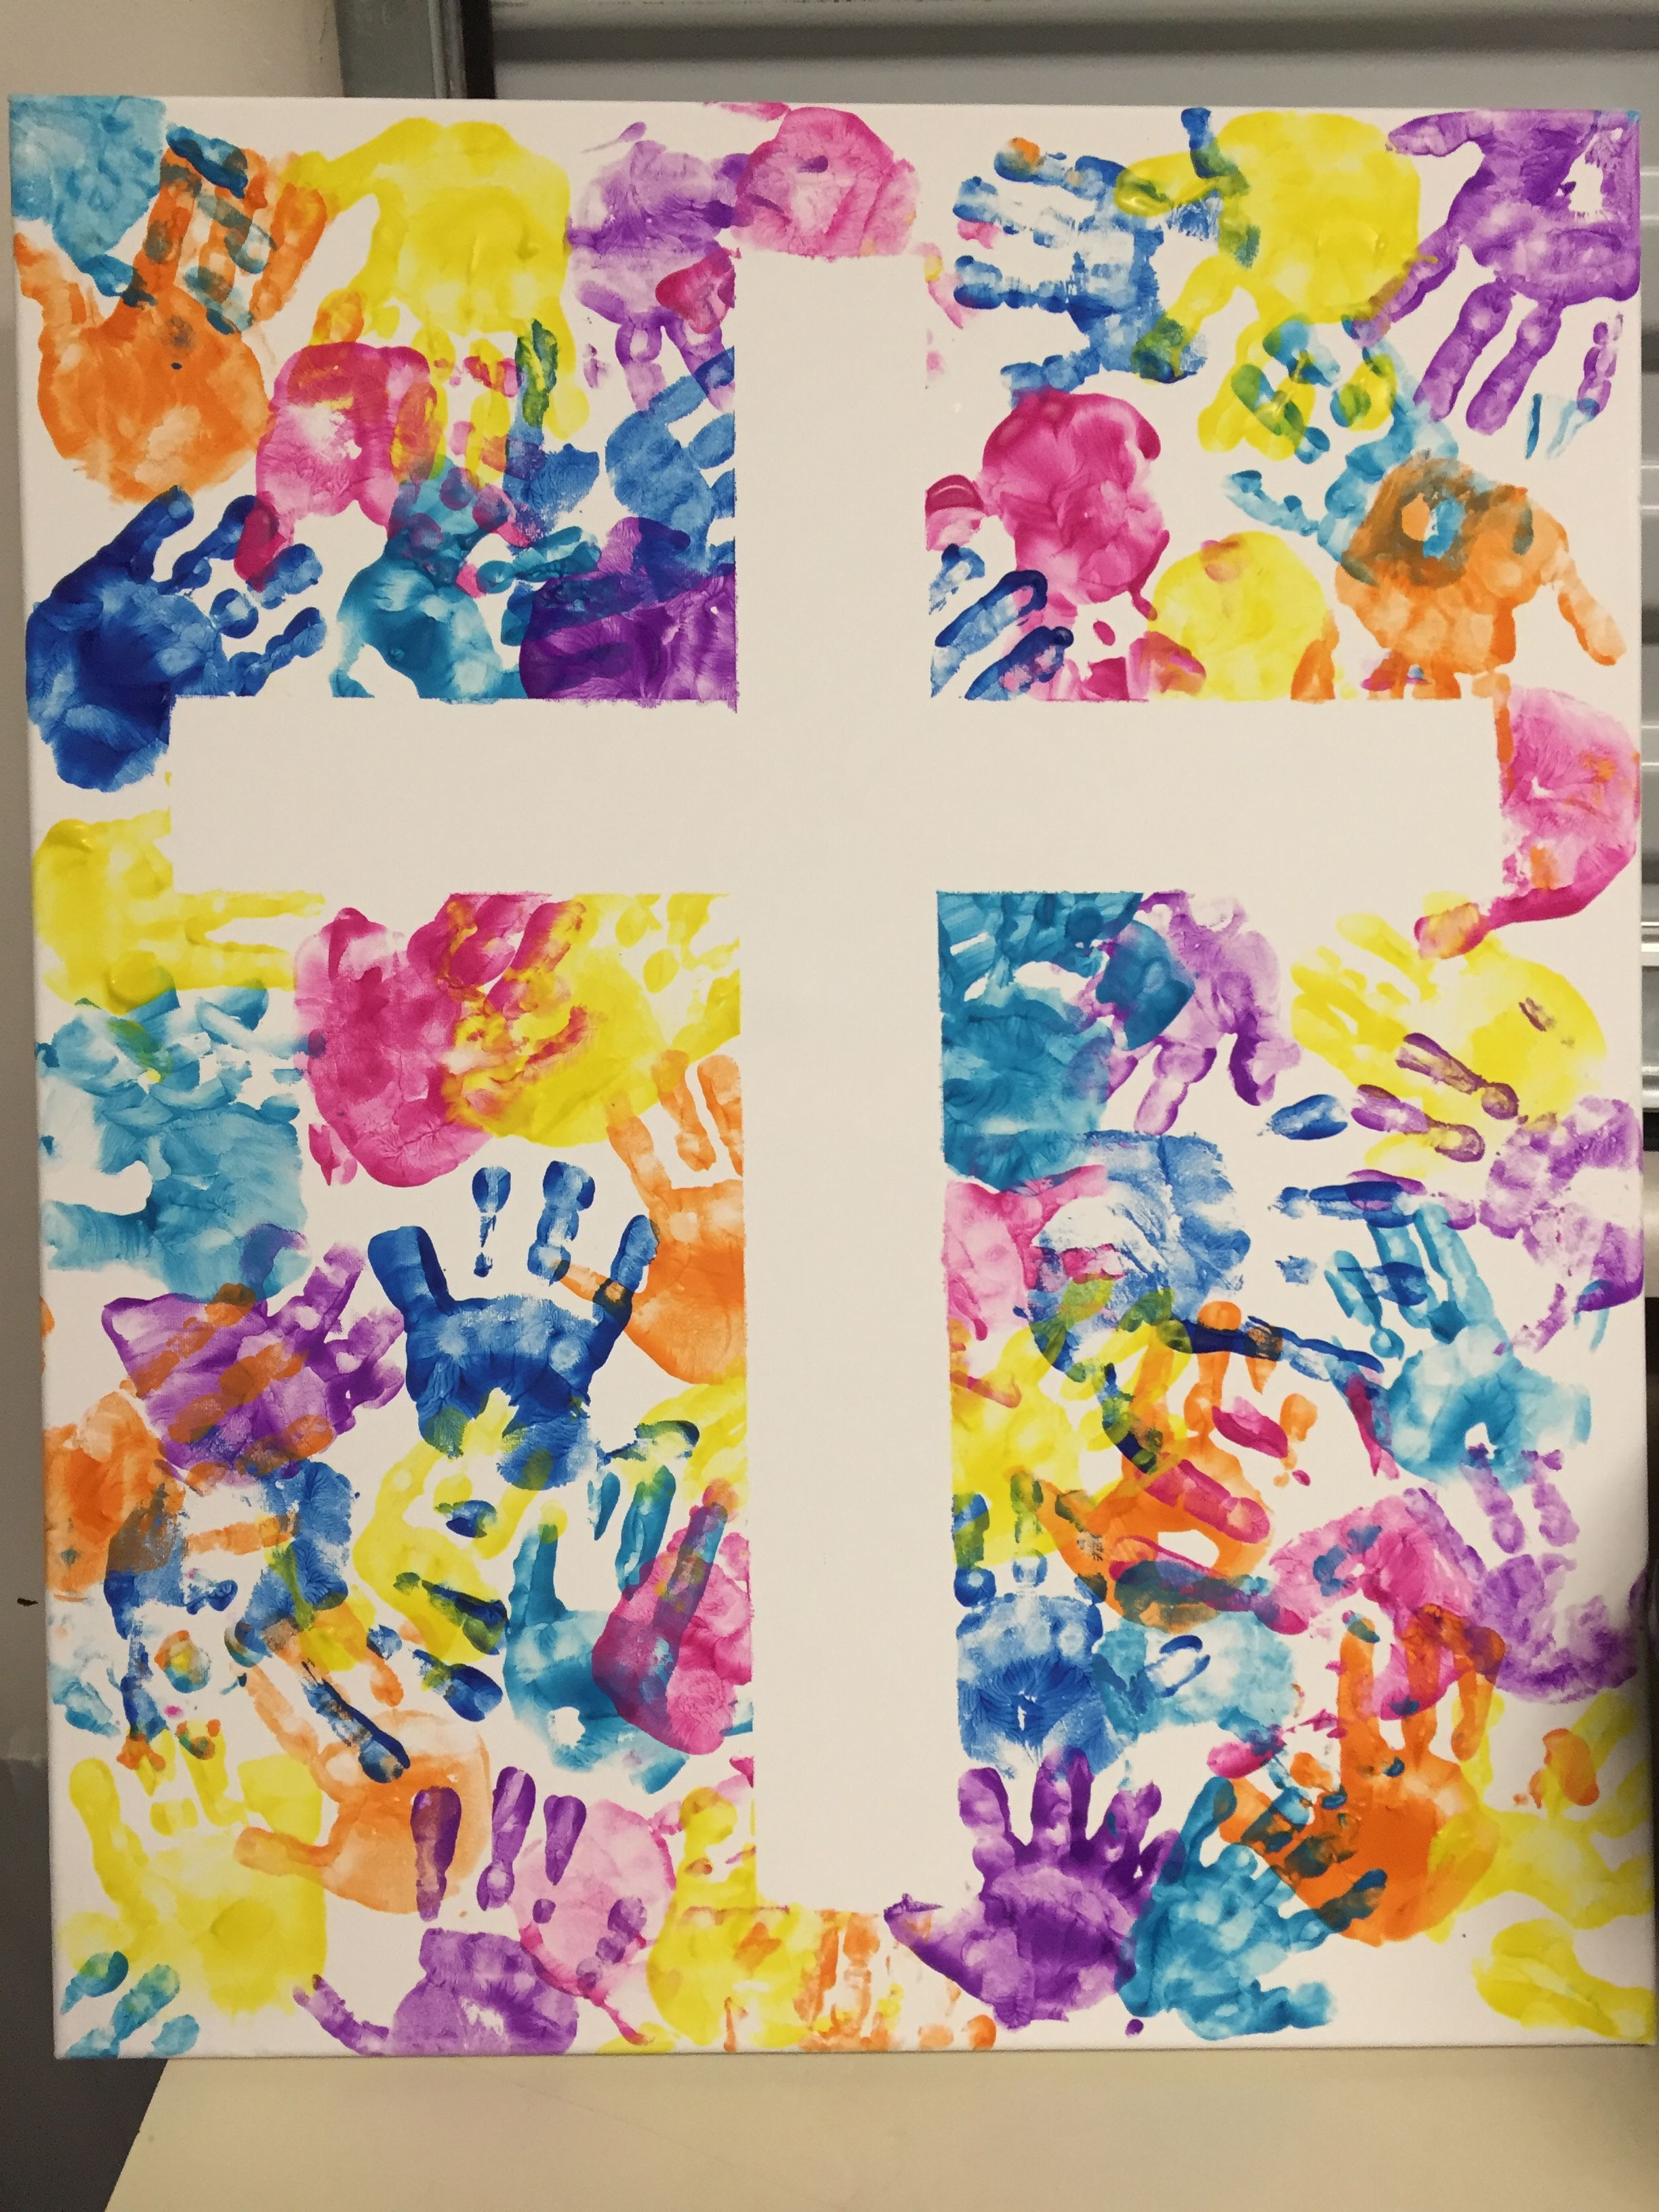 Handprint Cross Made By Nursery Kids Age 0 5 Used Blue Painters Tape To Make The Cross On A Large Kids Canvas Art Large Canvas Art Diy Cross Canvas Paintings